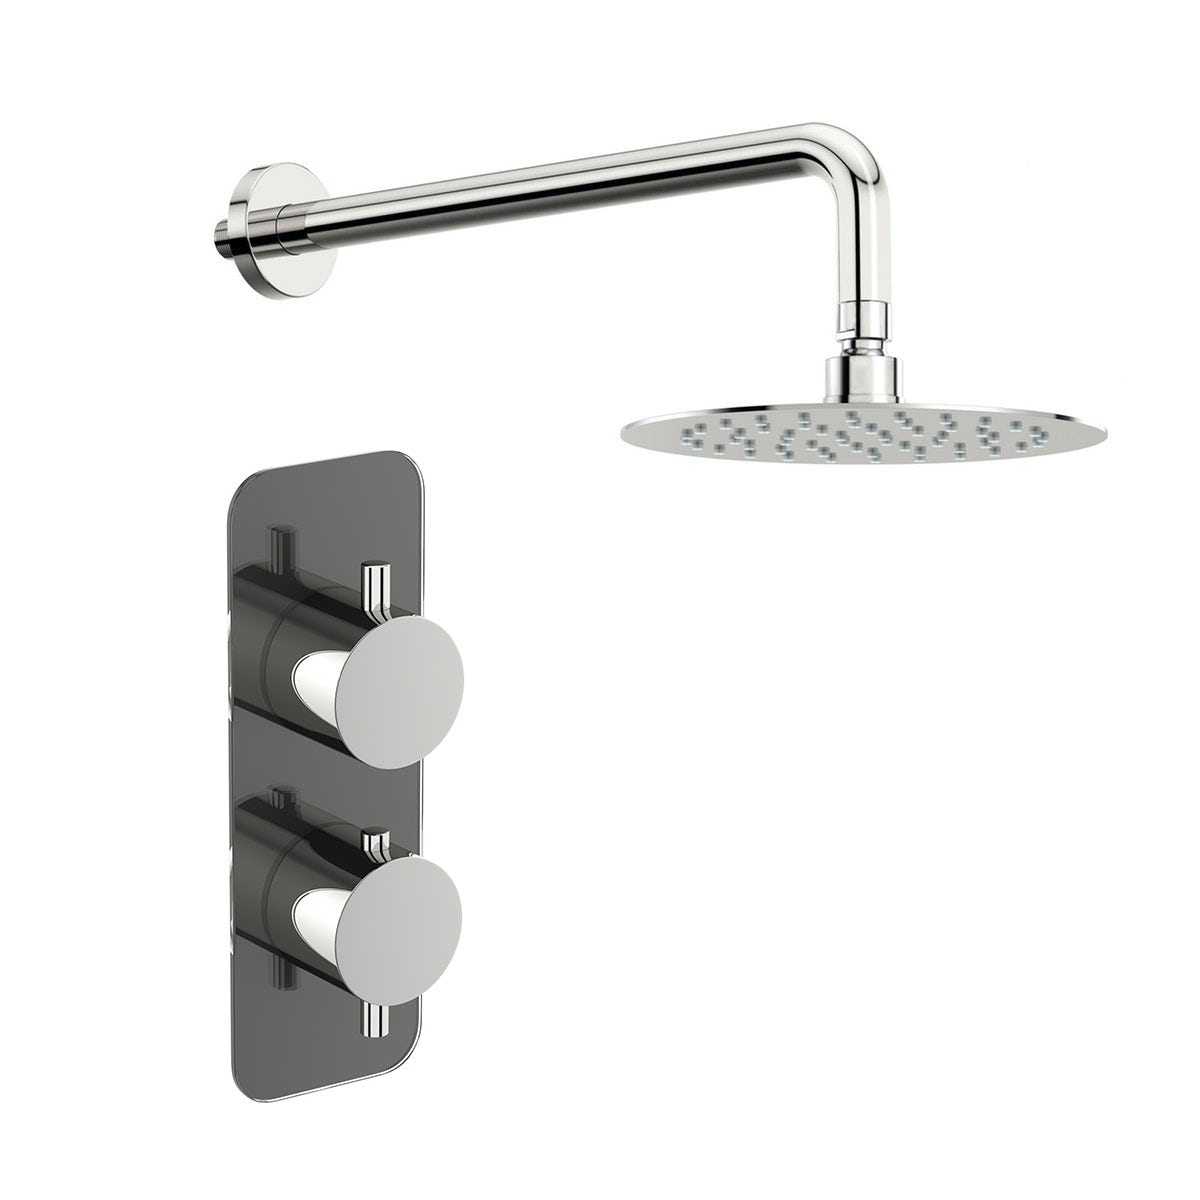 Mode Heath thermostatic shower valve with wall shower set